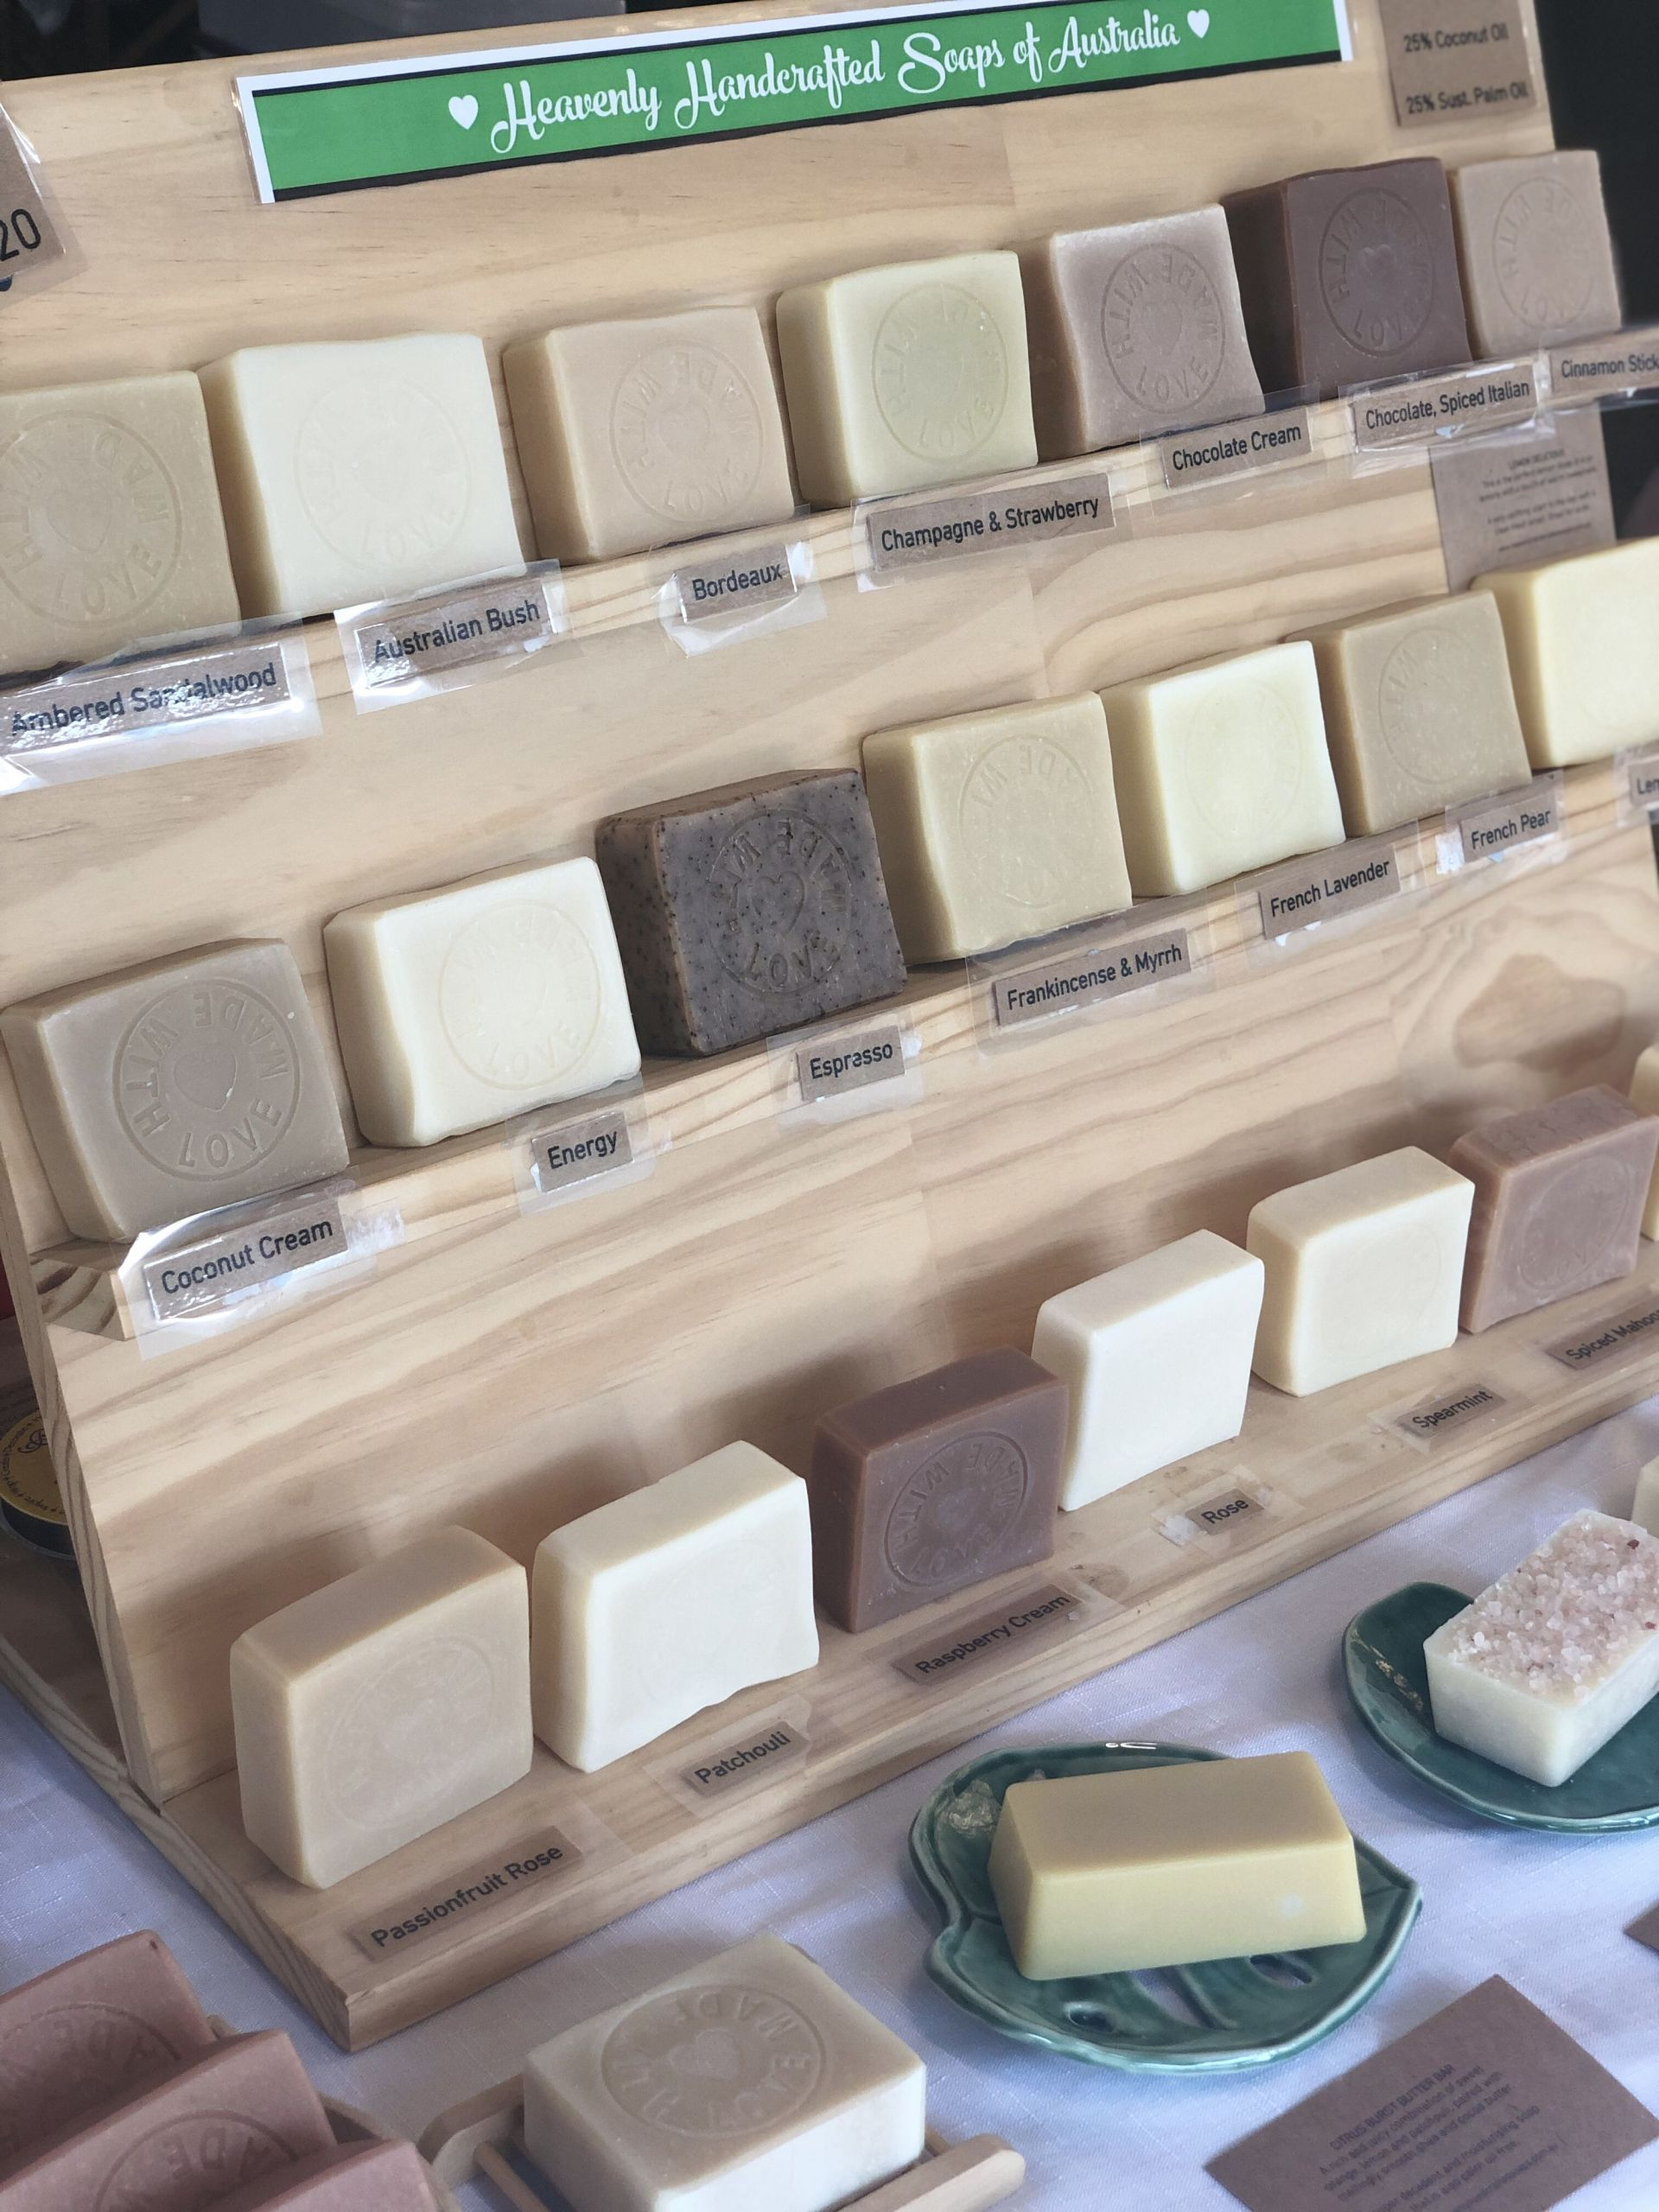 Bar De Jardin En Bois Unique All Of My Natural soaps Lined Up On Display Ready for Of 36 Luxe Bar De Jardin En Bois